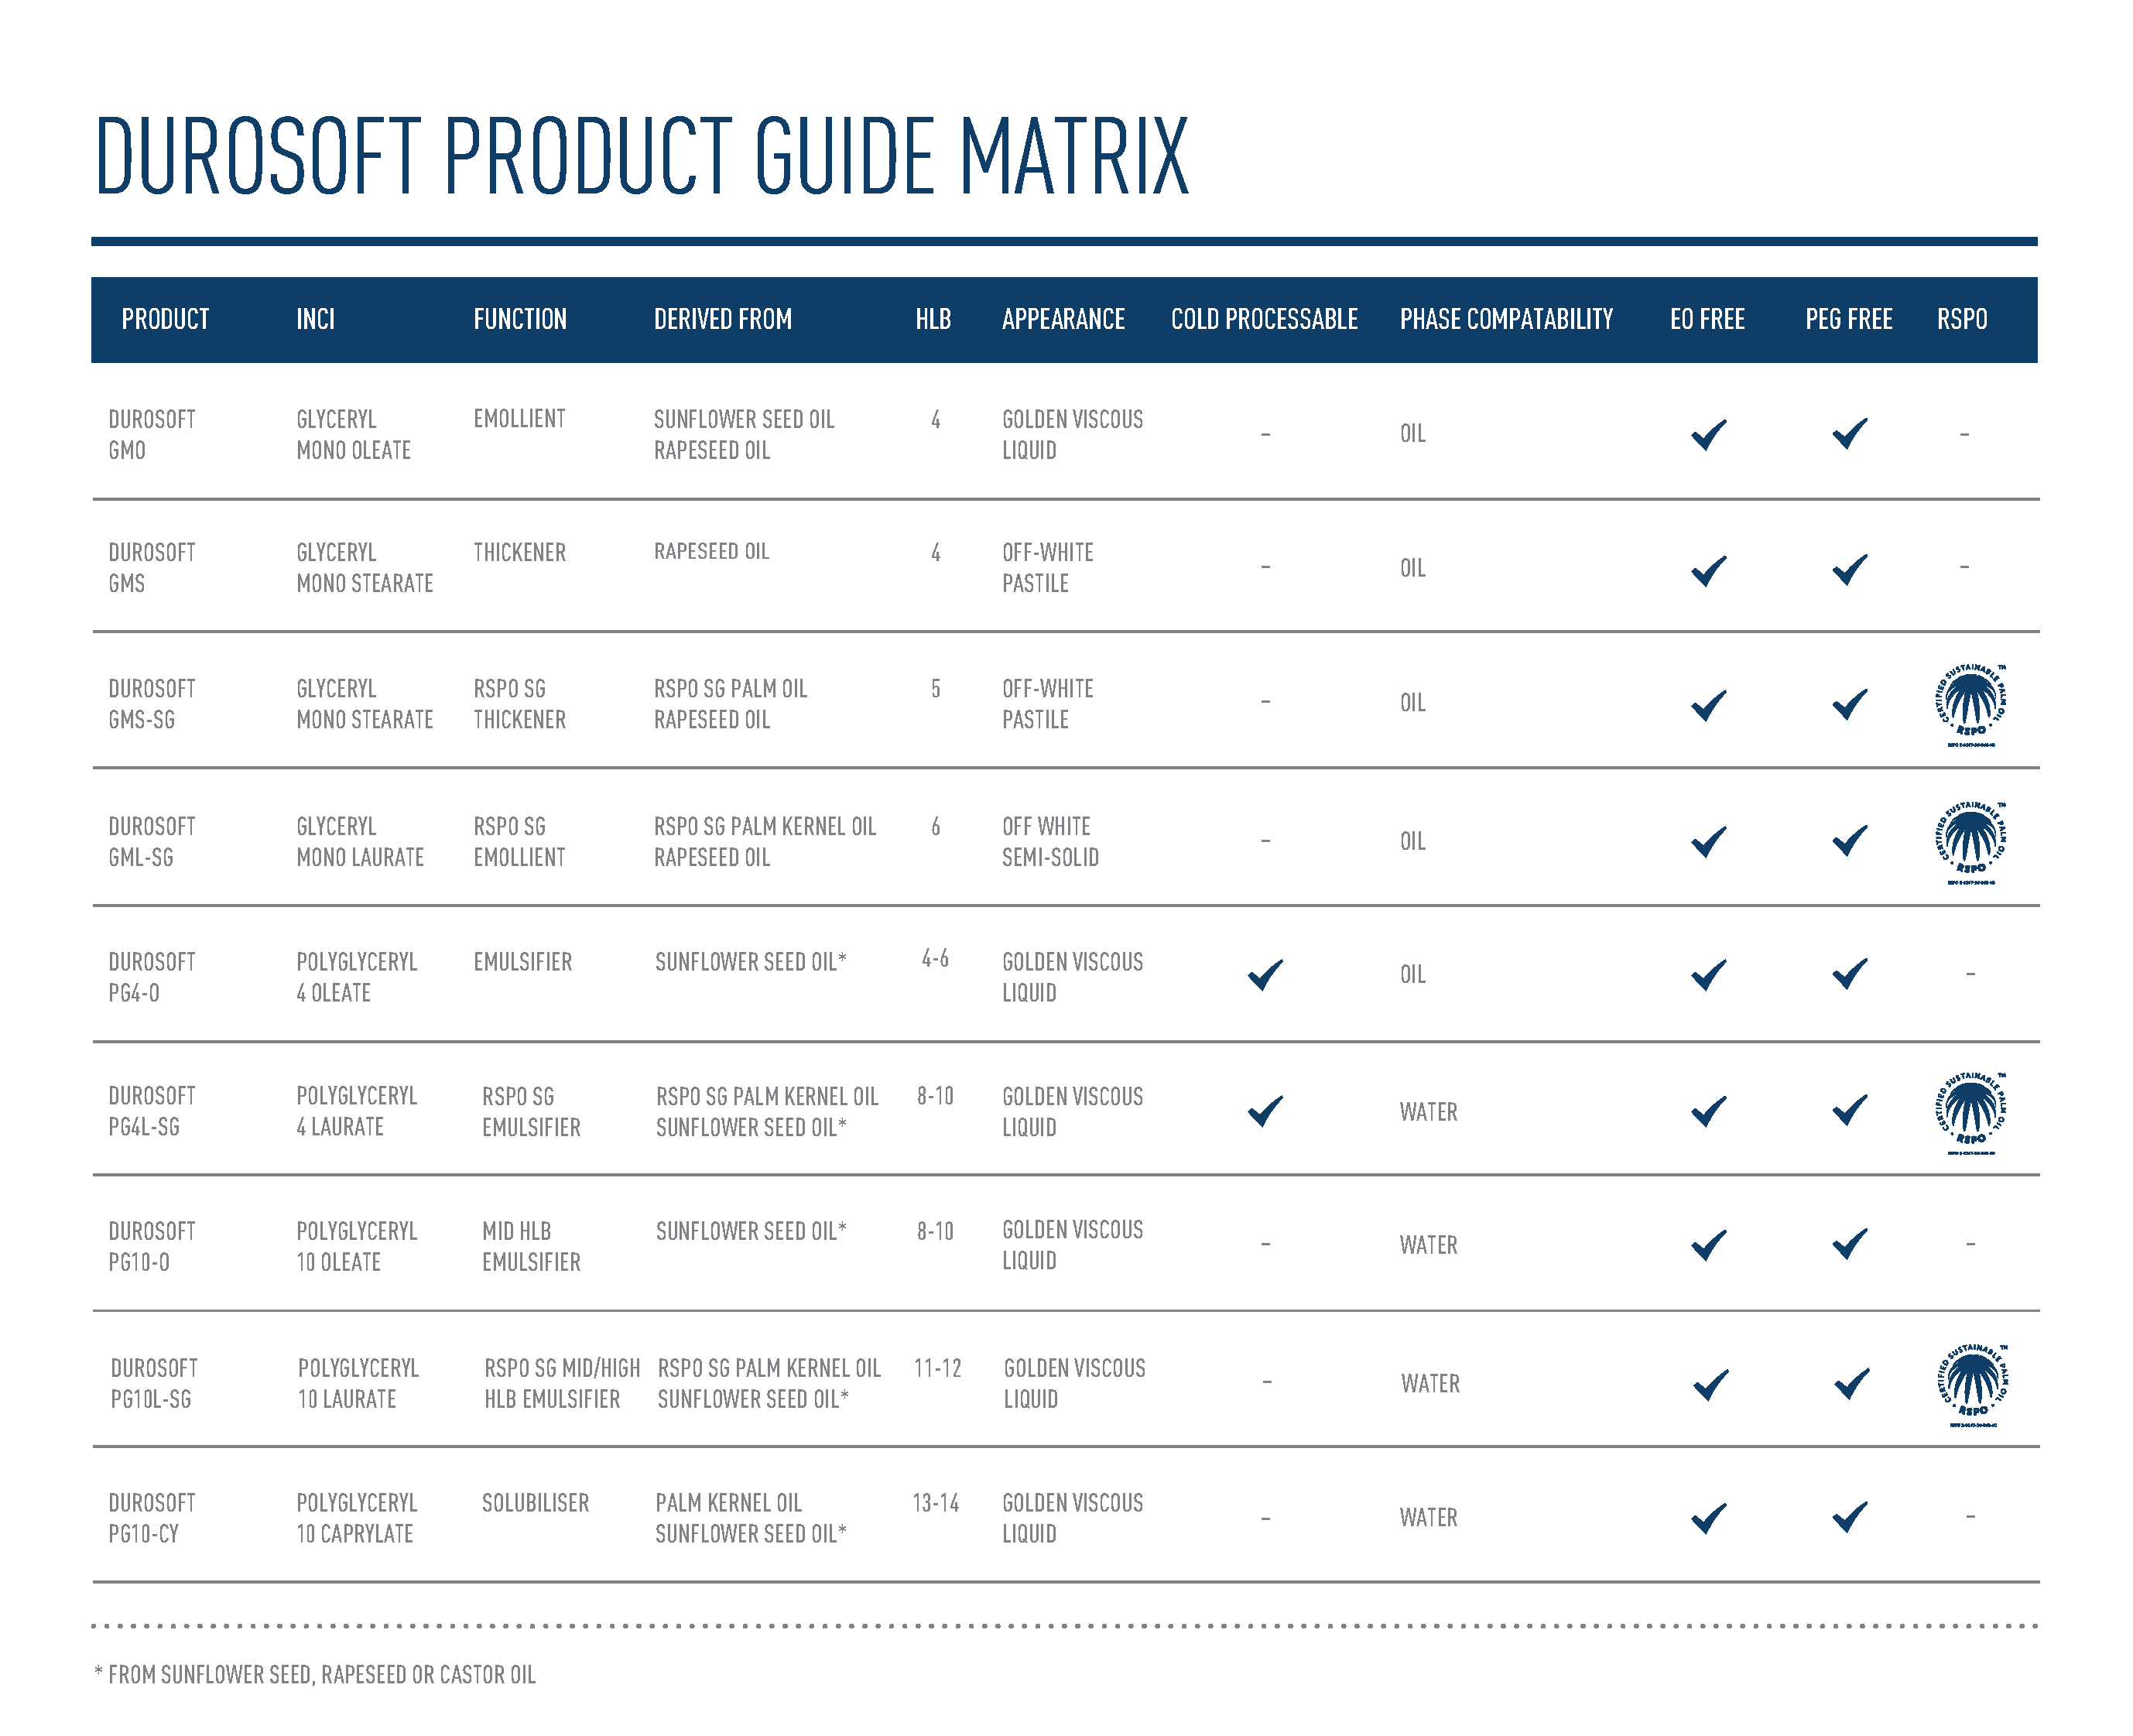 STEPHENSON DUROSOFT Product Matrix